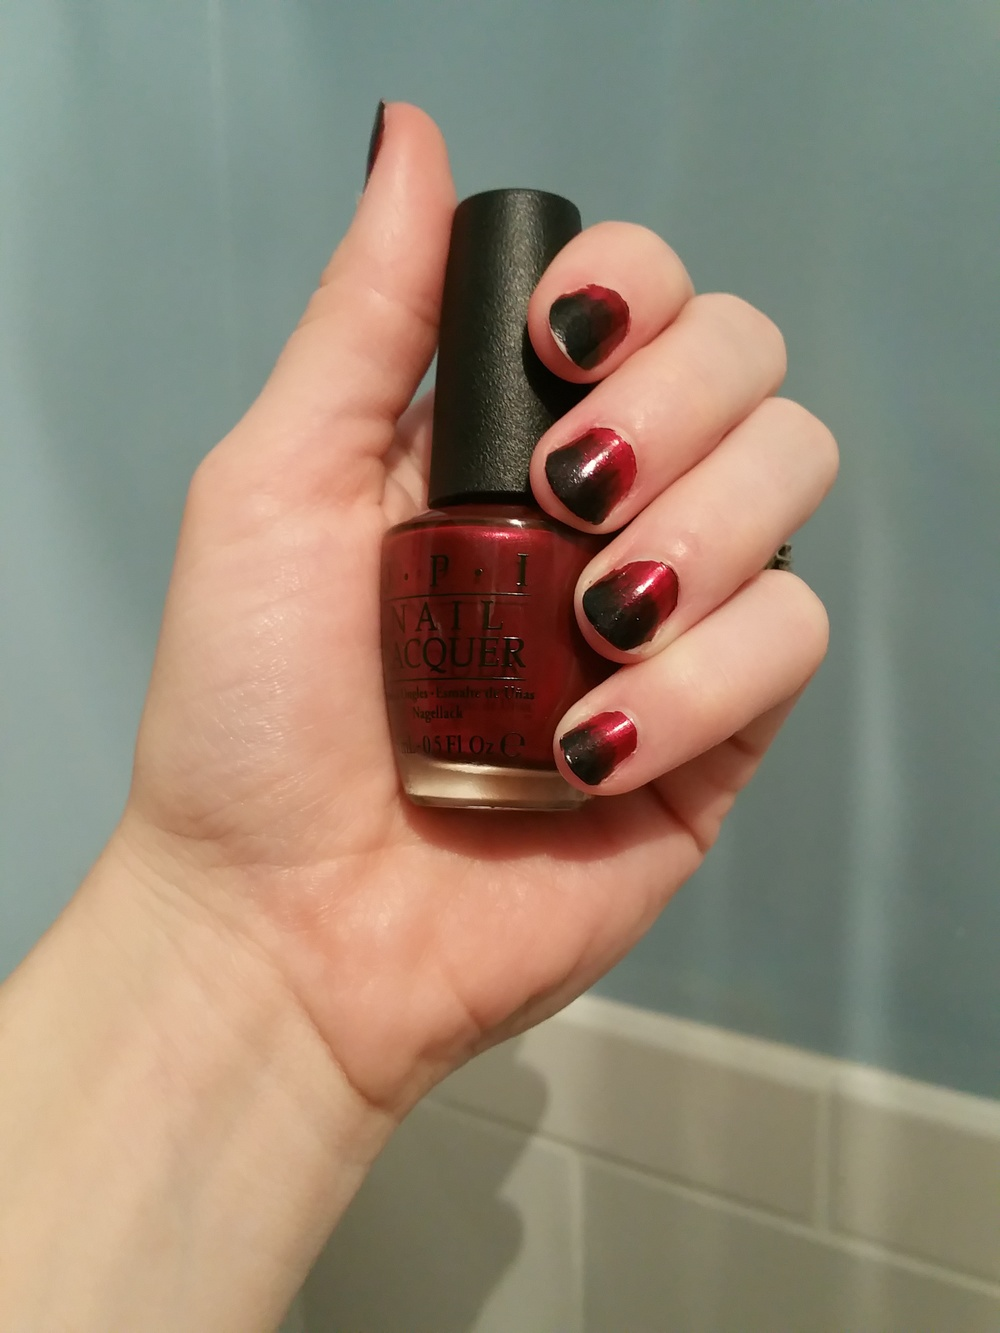 Cassandra Pentaghast themed nails - The Peachy Pixel